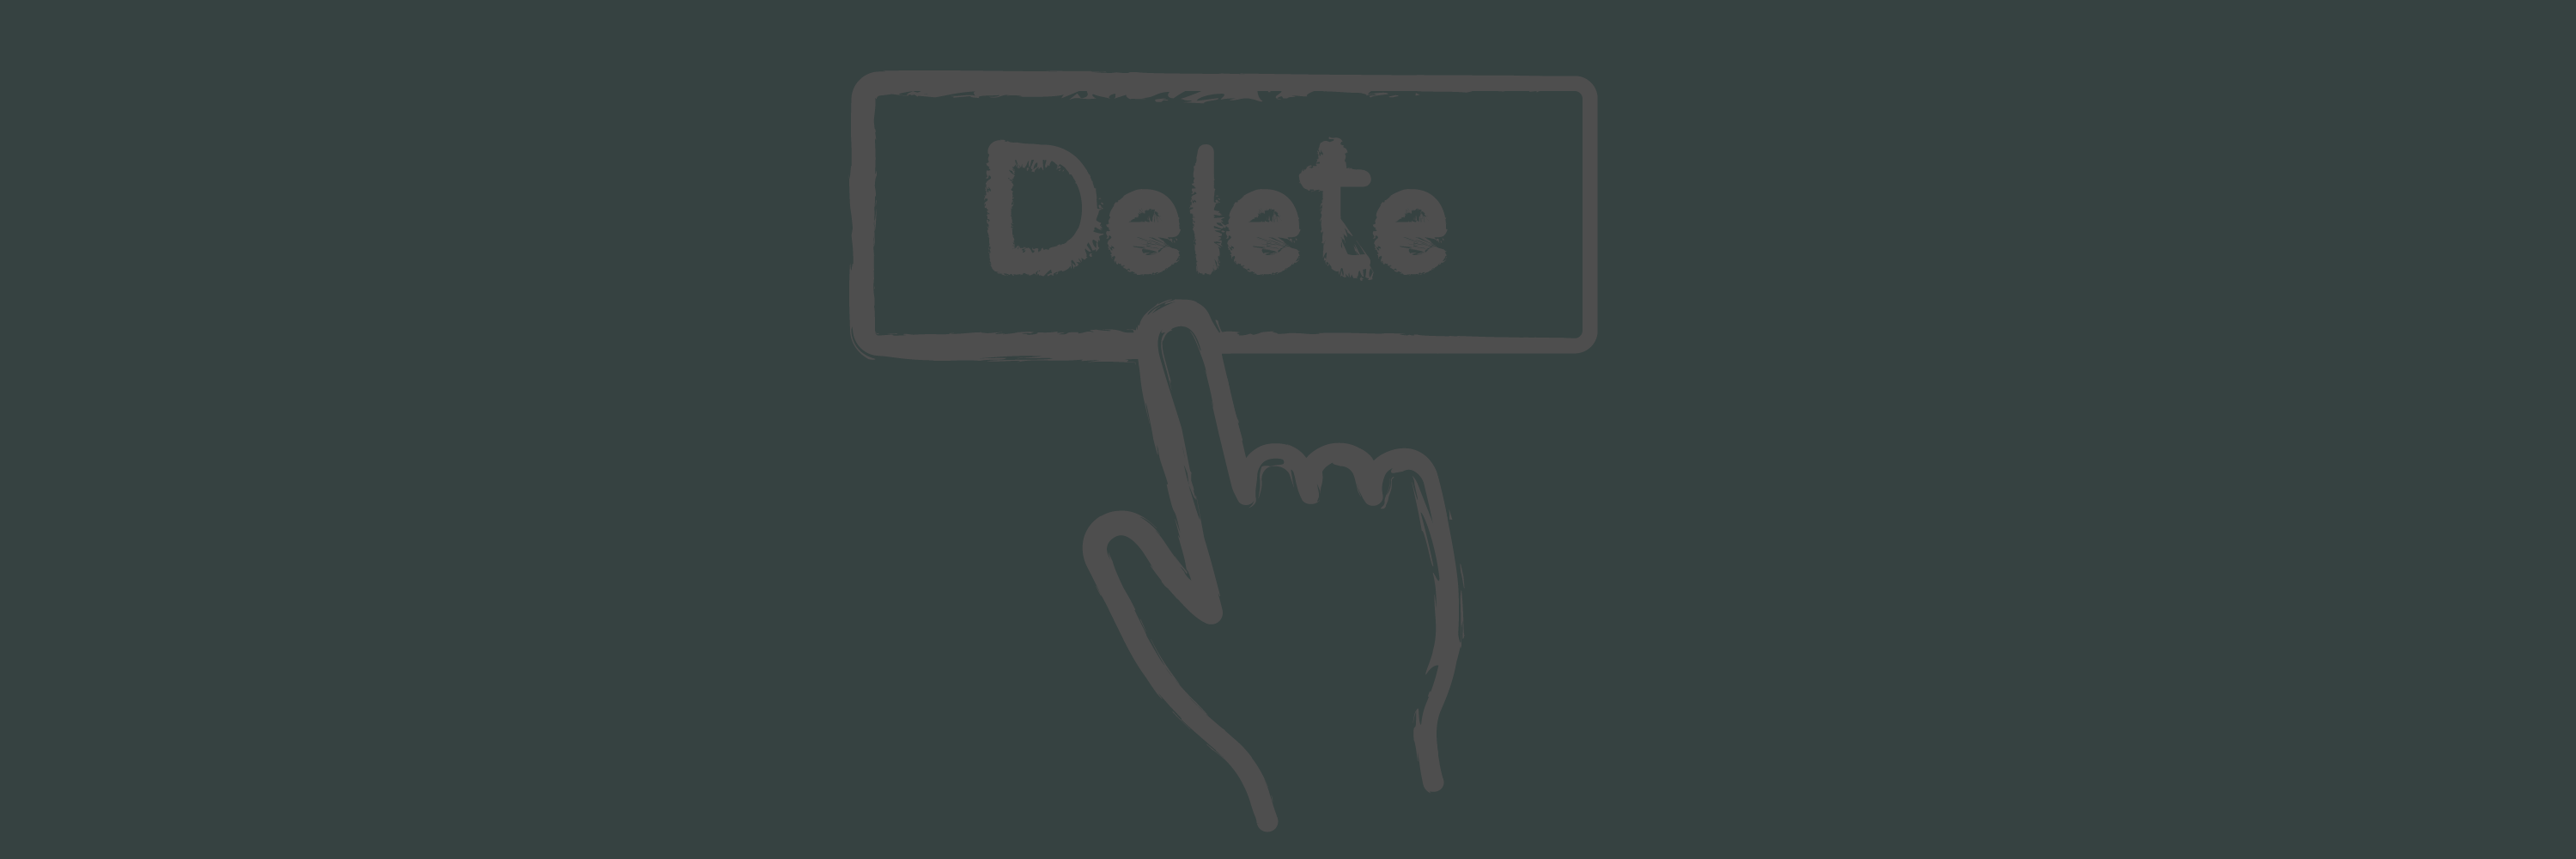 How to delete a tweet: best practices around deleting tweets, reposting with error corrections & more